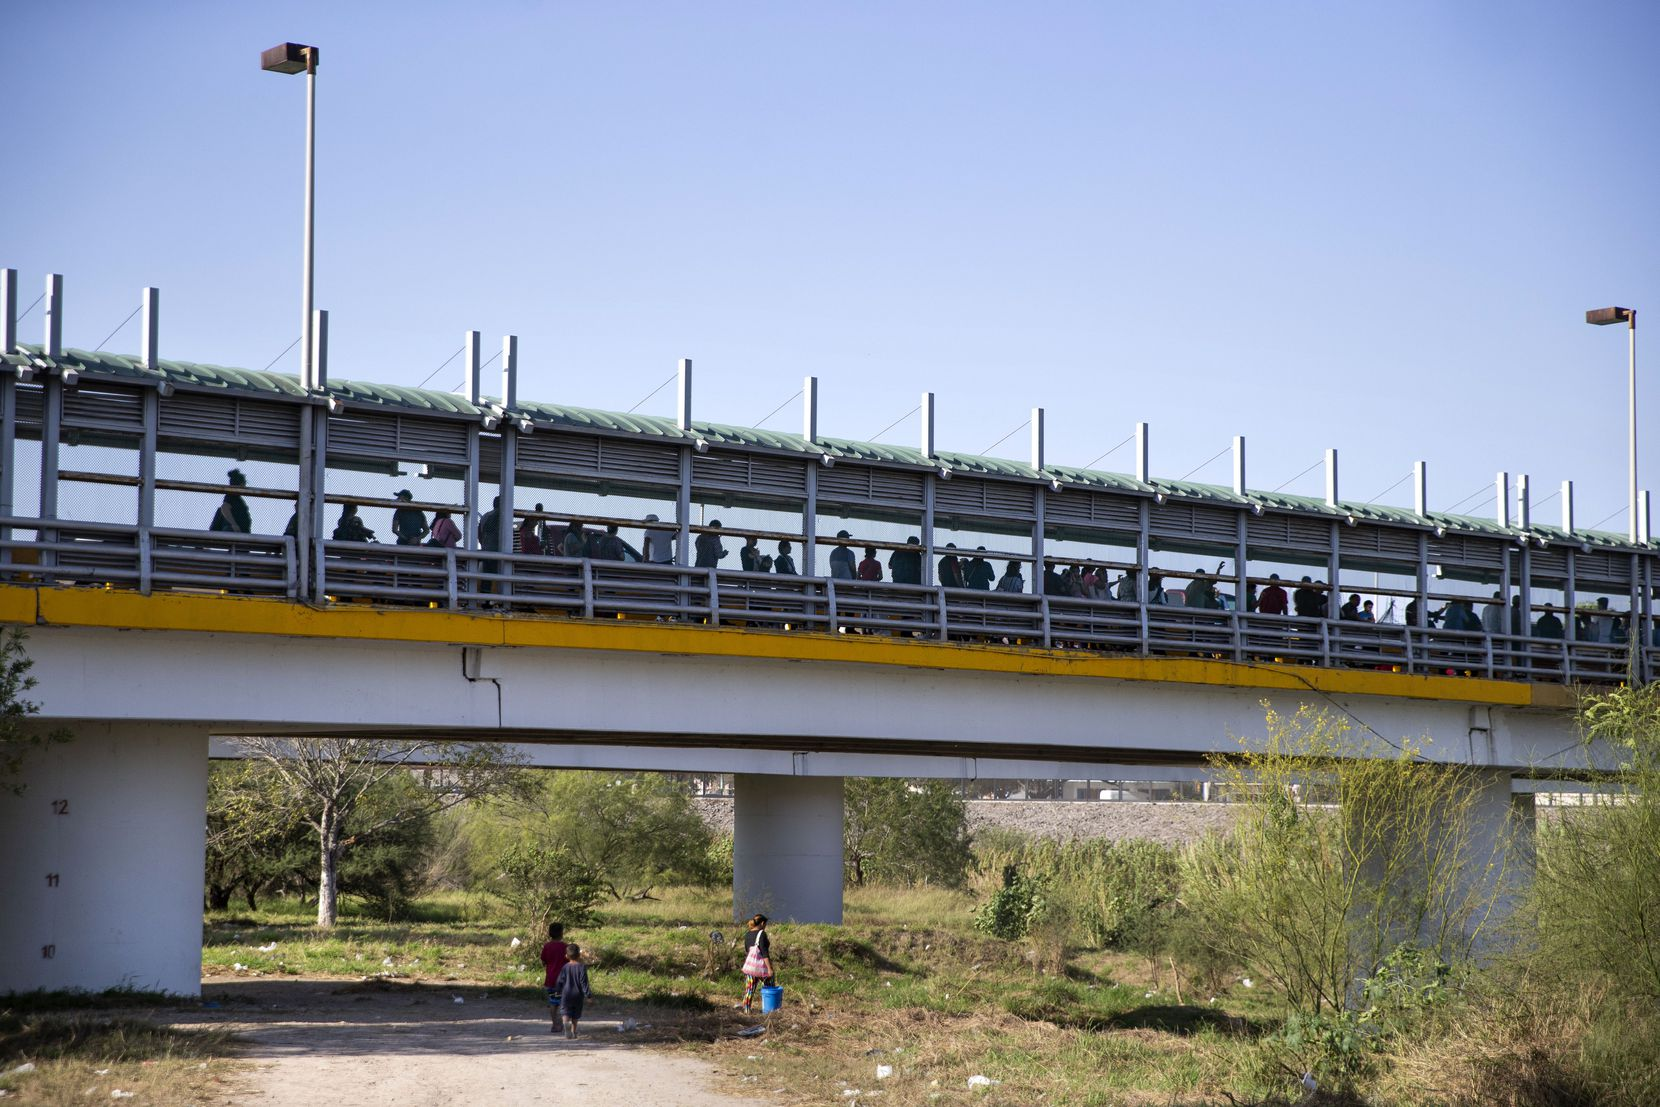 The line for pedestrians to enter the U.S. at the Gateway International Bridge hovers above the river bank access trail used by asylum-seekers living at the temporary tent camps in Matamoros, Mexico, on Dec. 15, 2019.